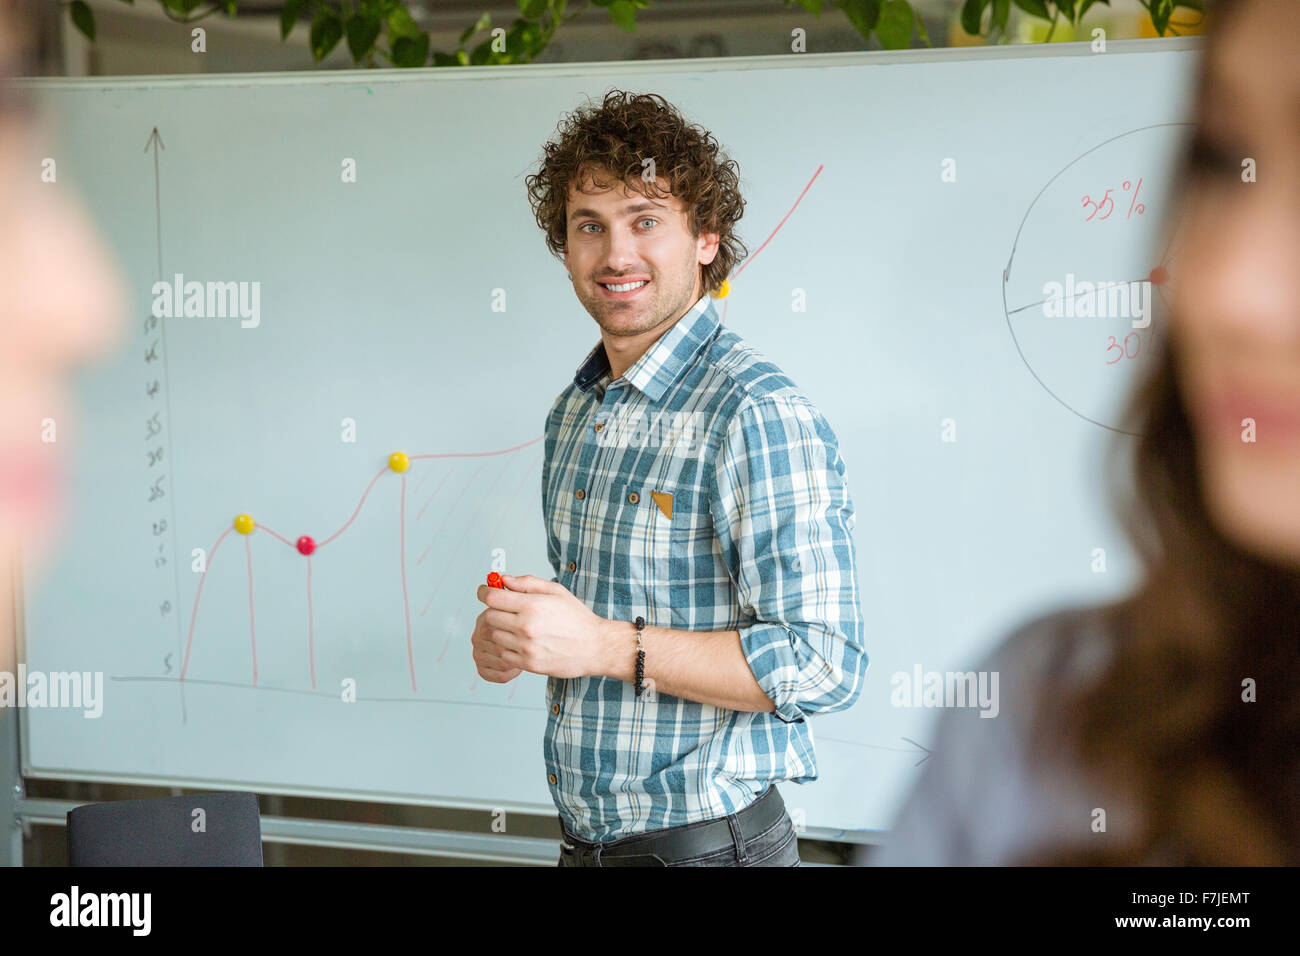 Handsome smart successful positive curly guy in checkered shirt standing near the whiteboard and smiling - Stock Image